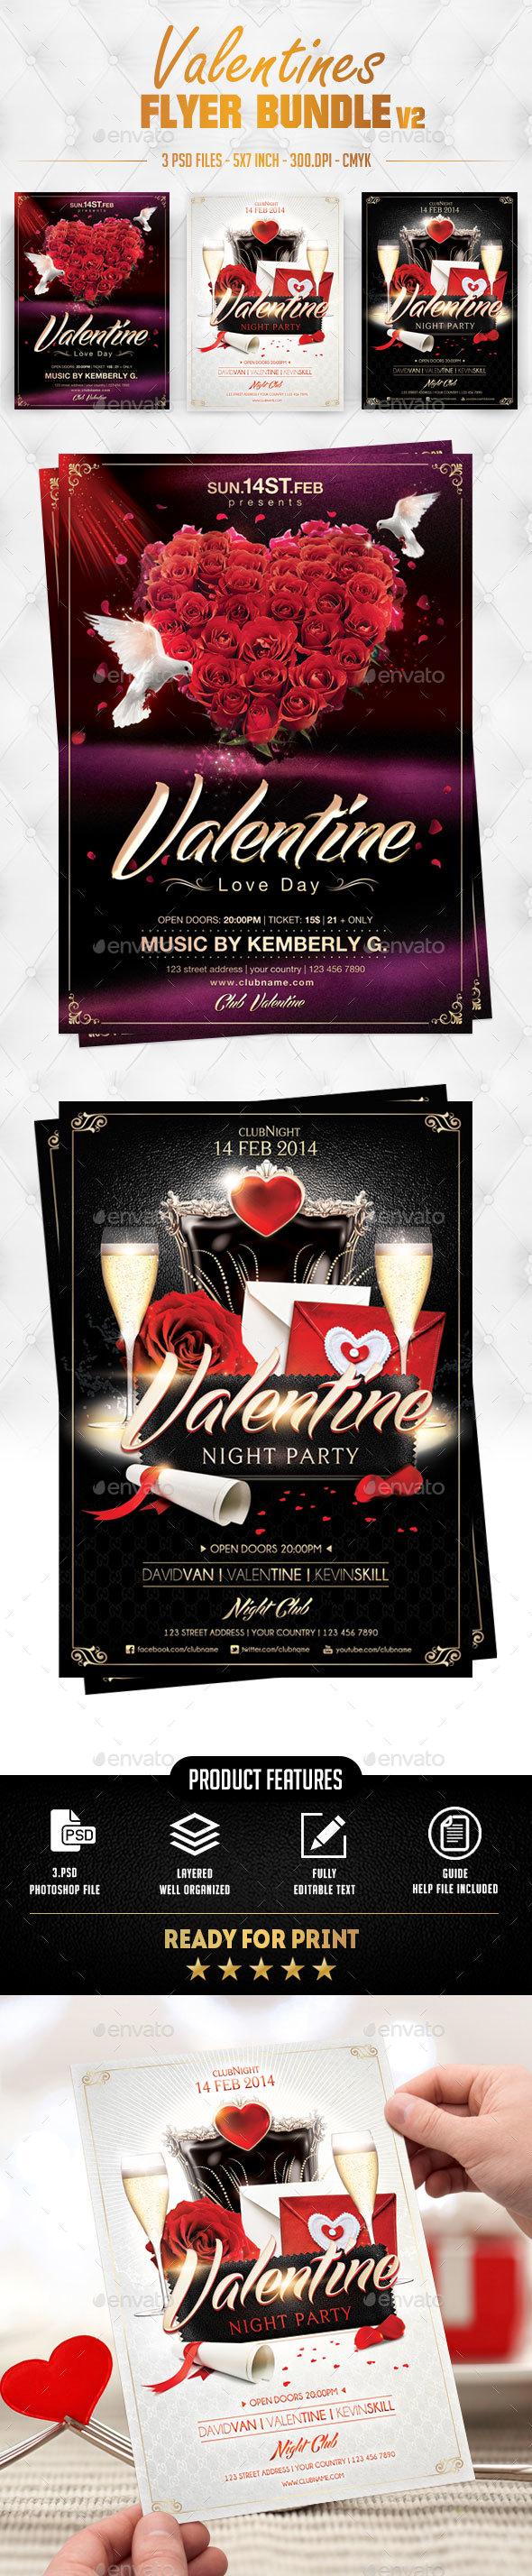 Valentines Flyer Bundle v2 - Events Flyers